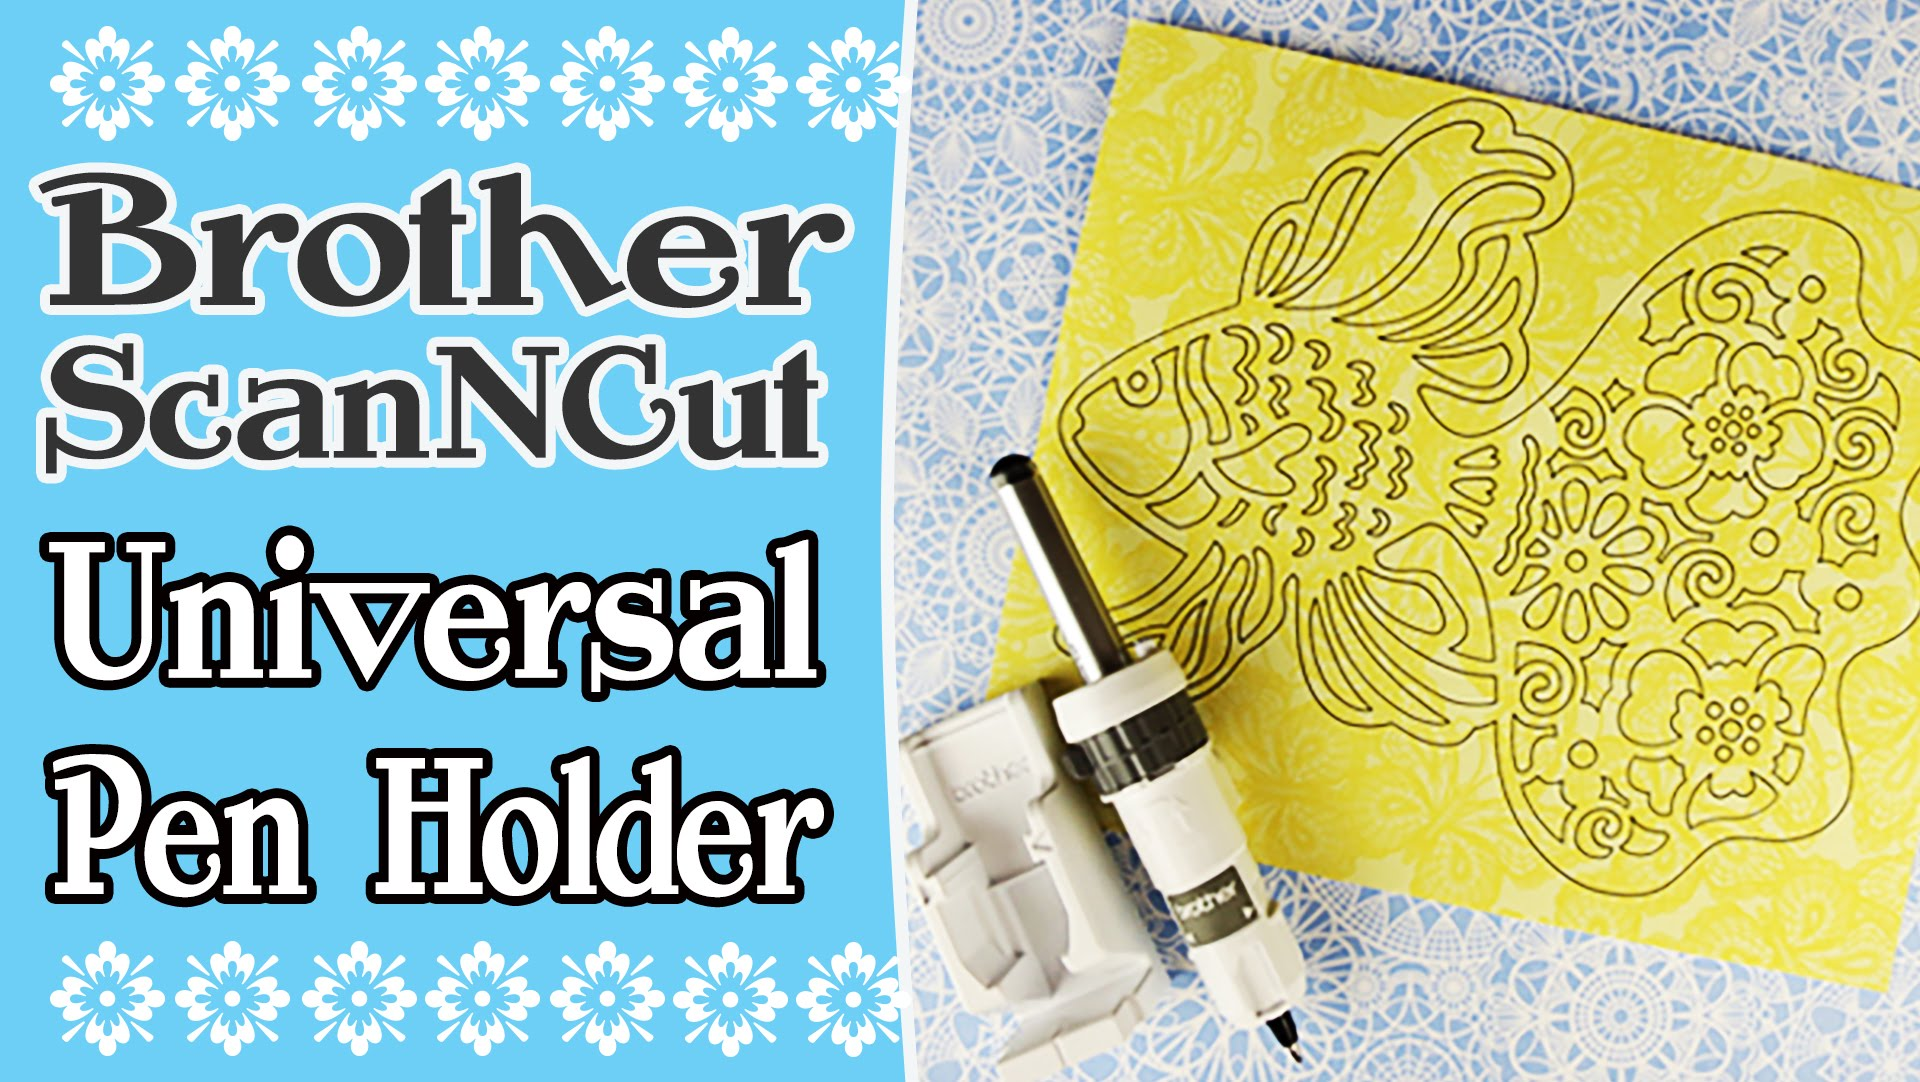 Brother ScanNCut Universal Pen Holder Review & Tutorial